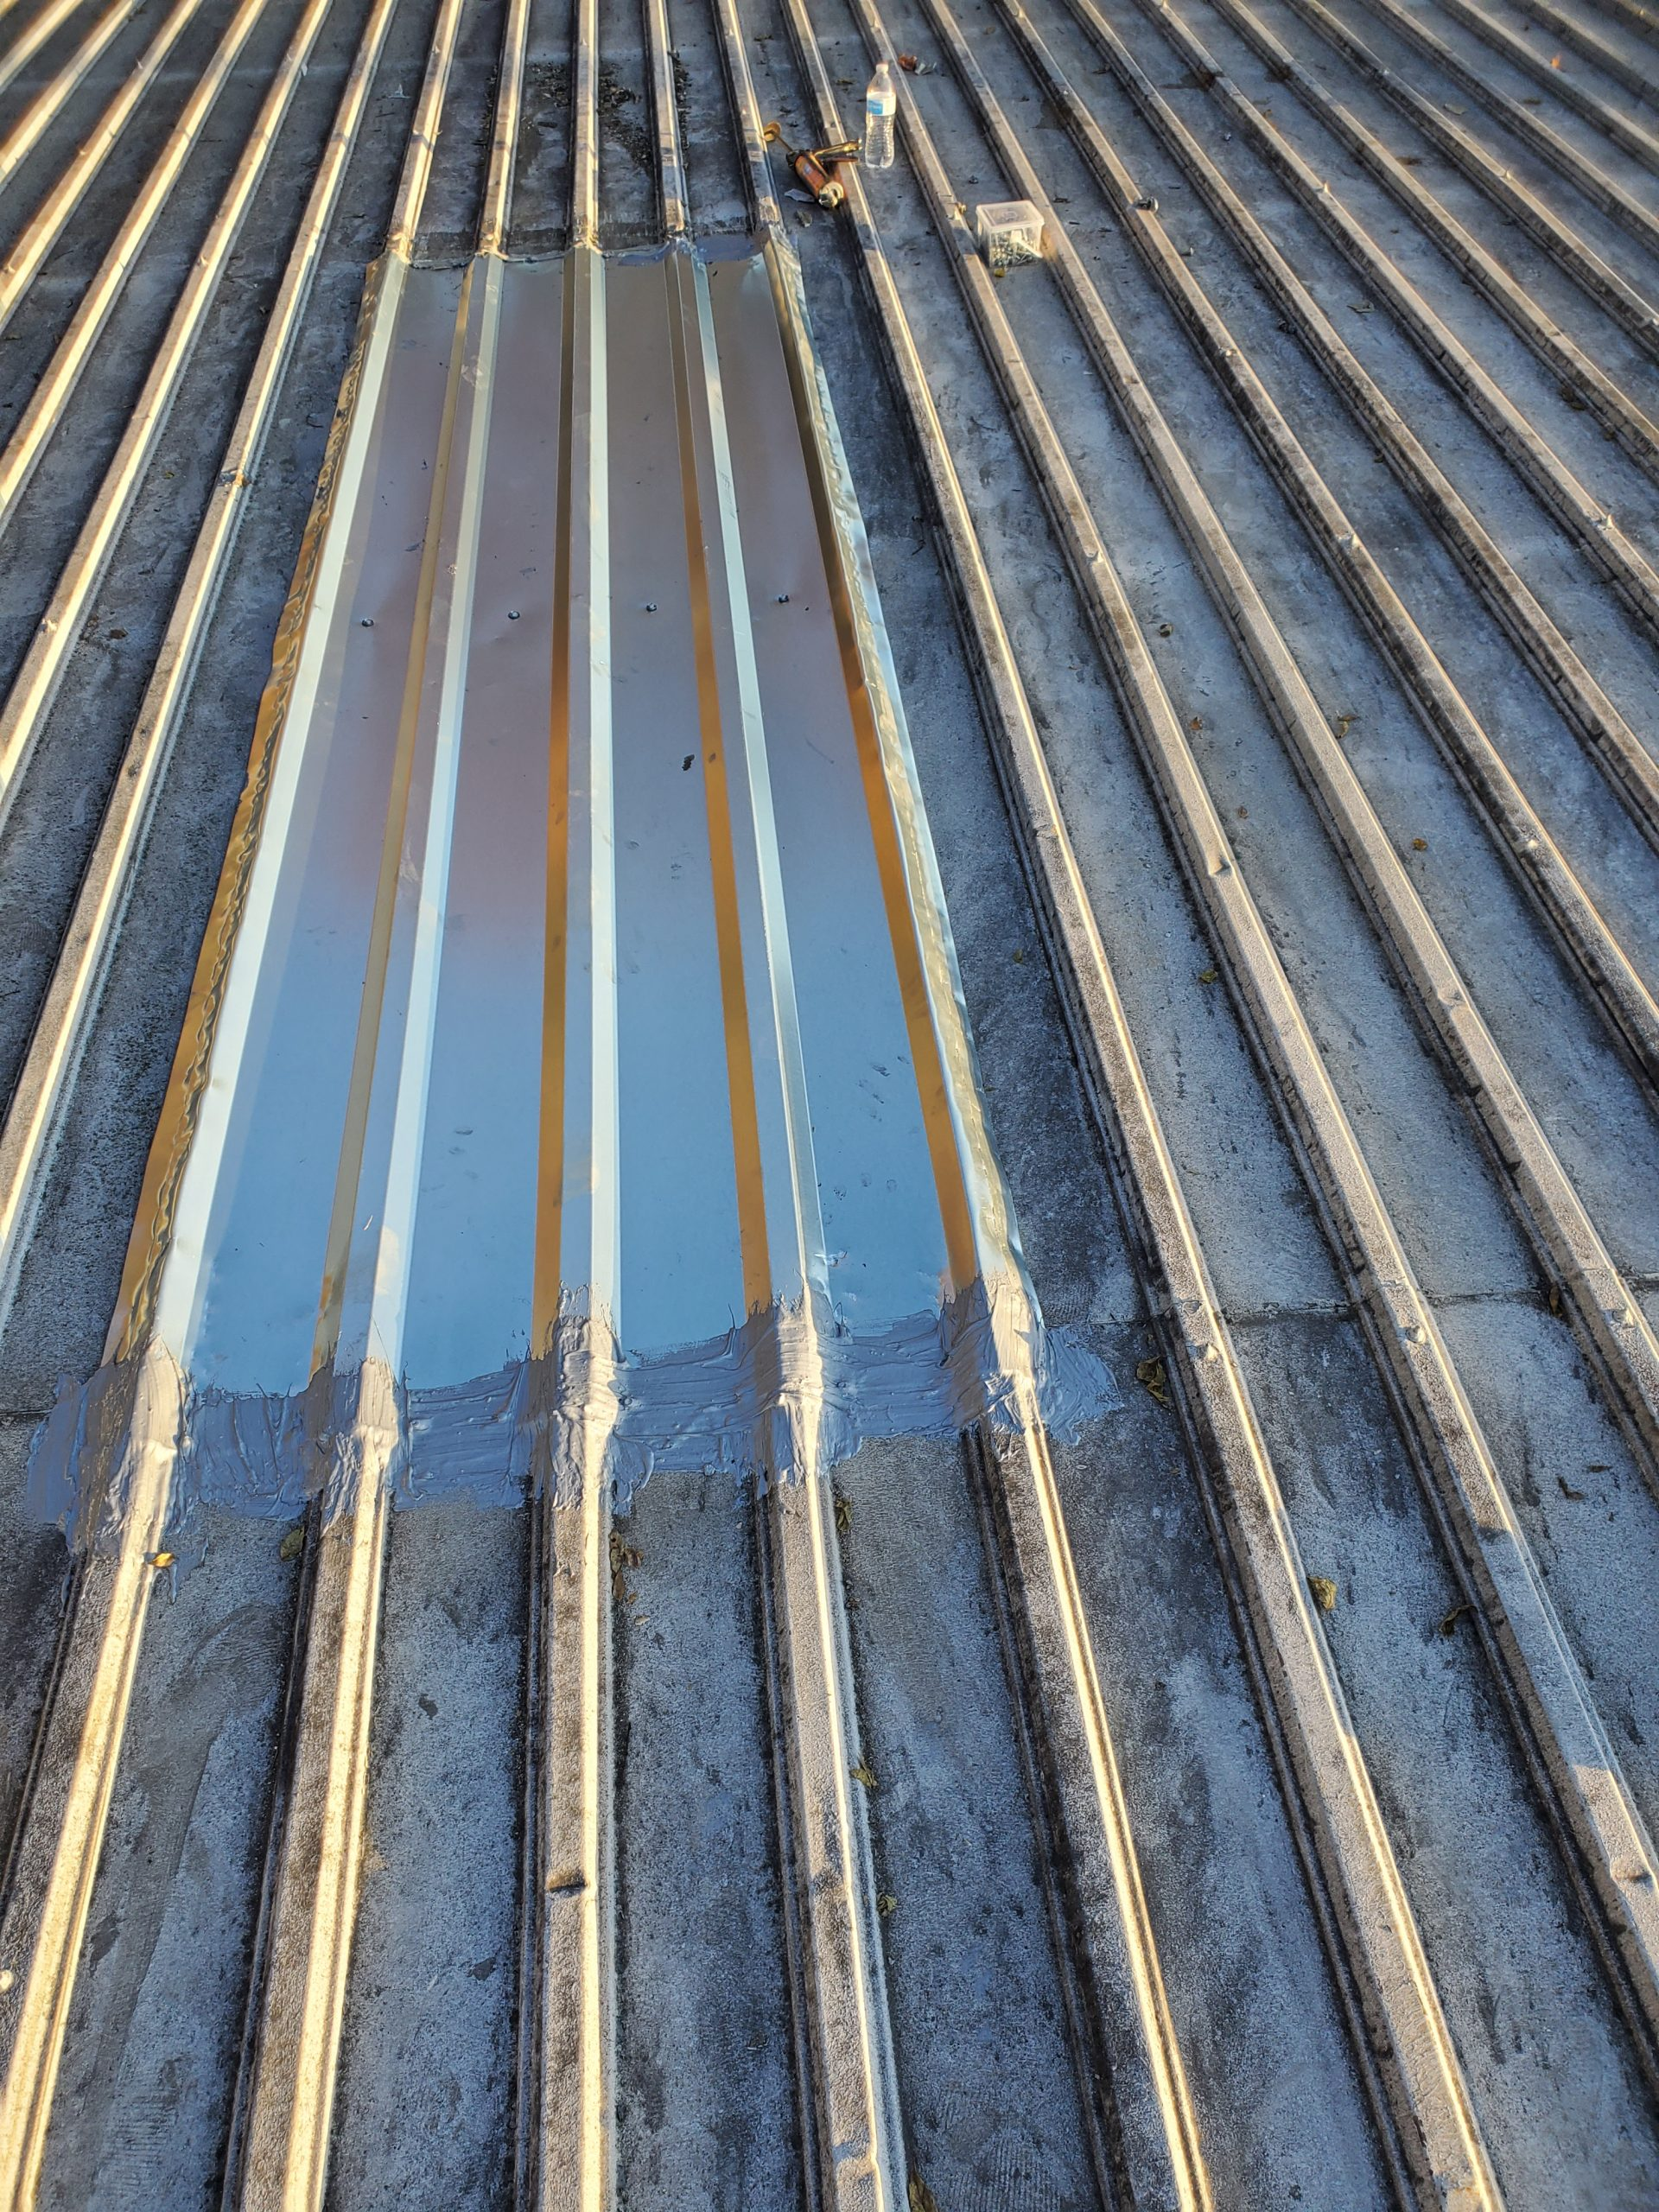 This is a view of the skylight on a metal roof sealed over with Aldo 385.